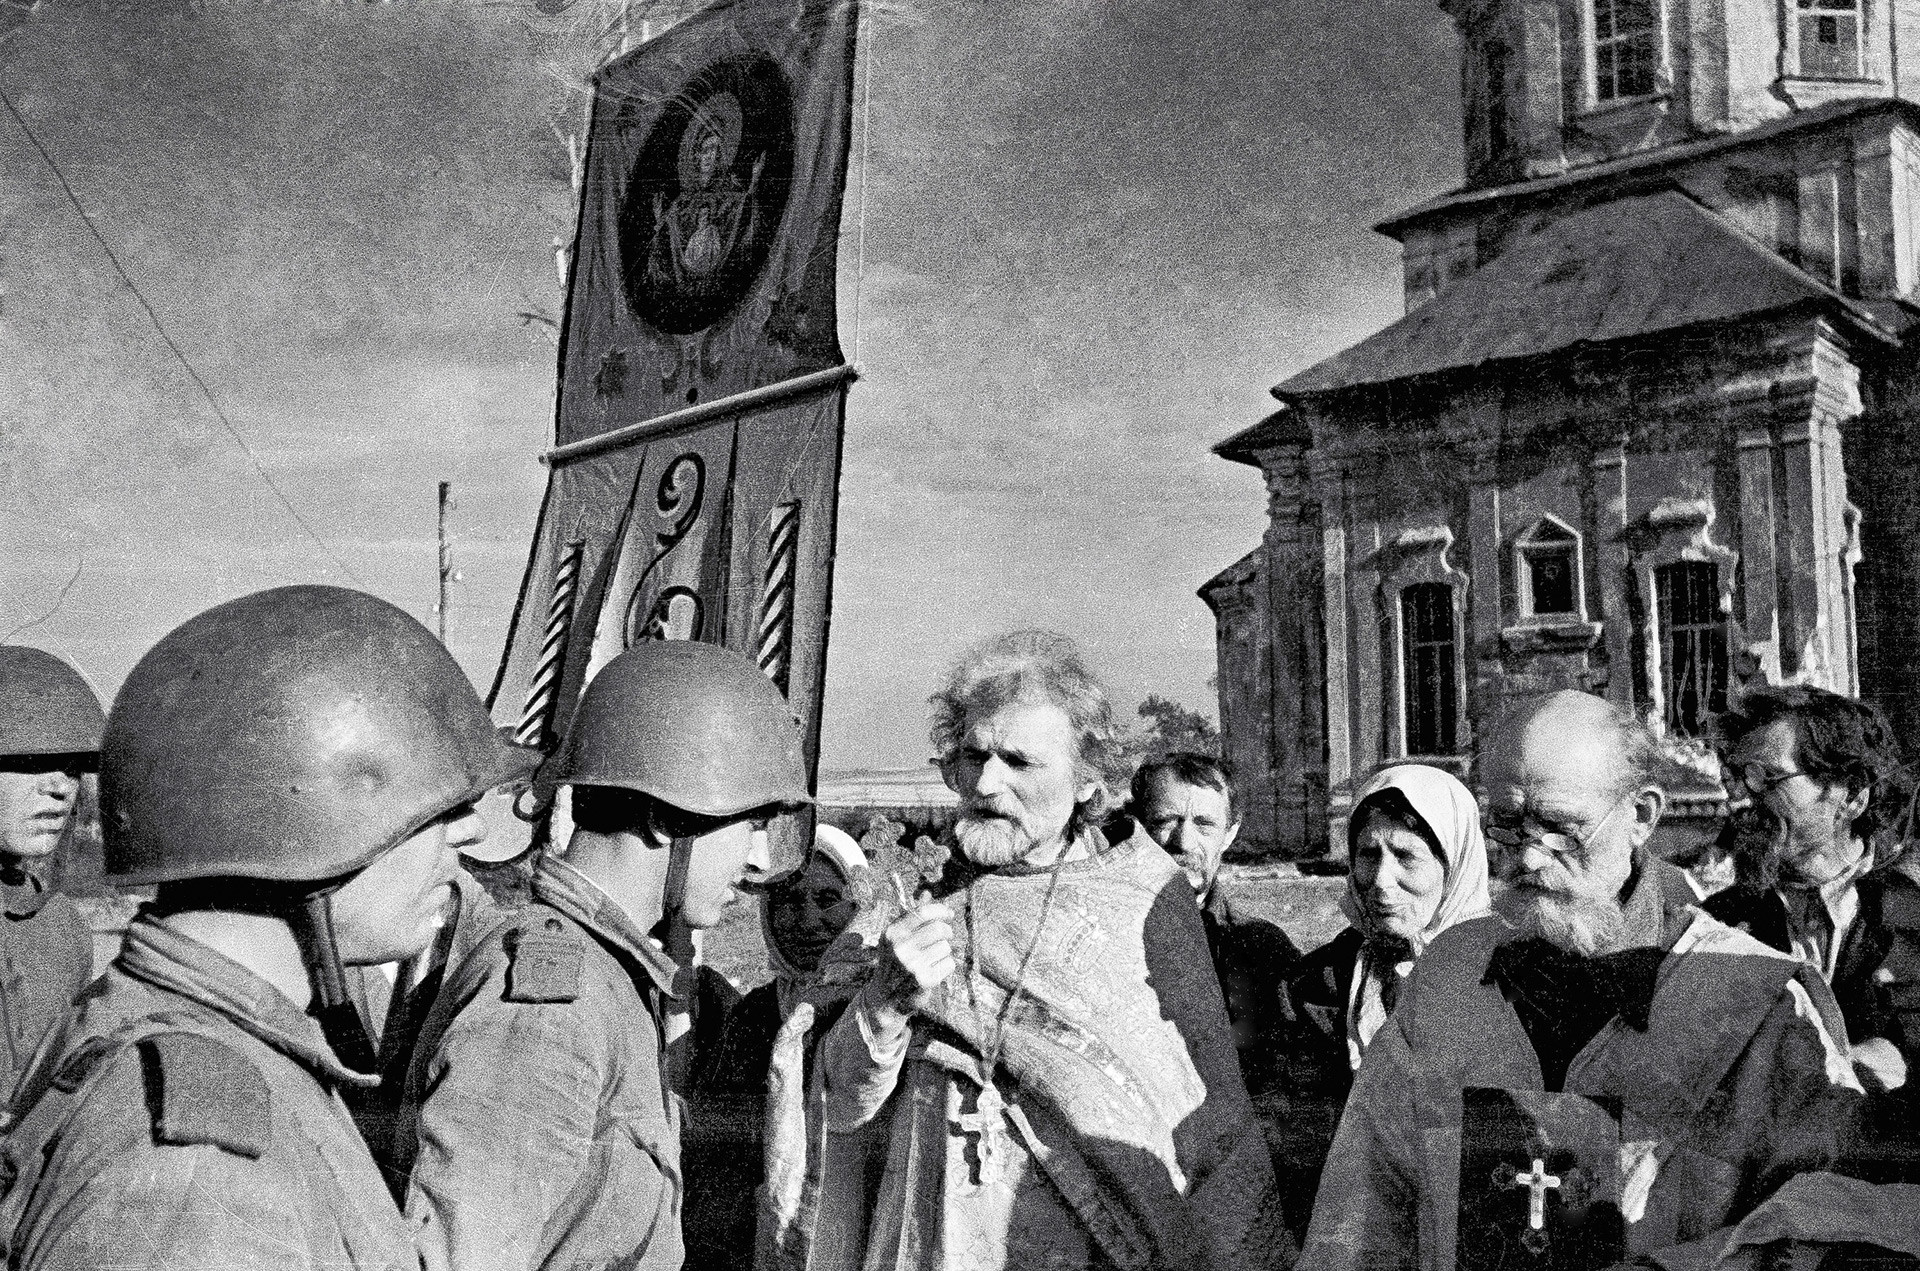 A priest blessing soldiers during the Great Patriotic War, 1943.